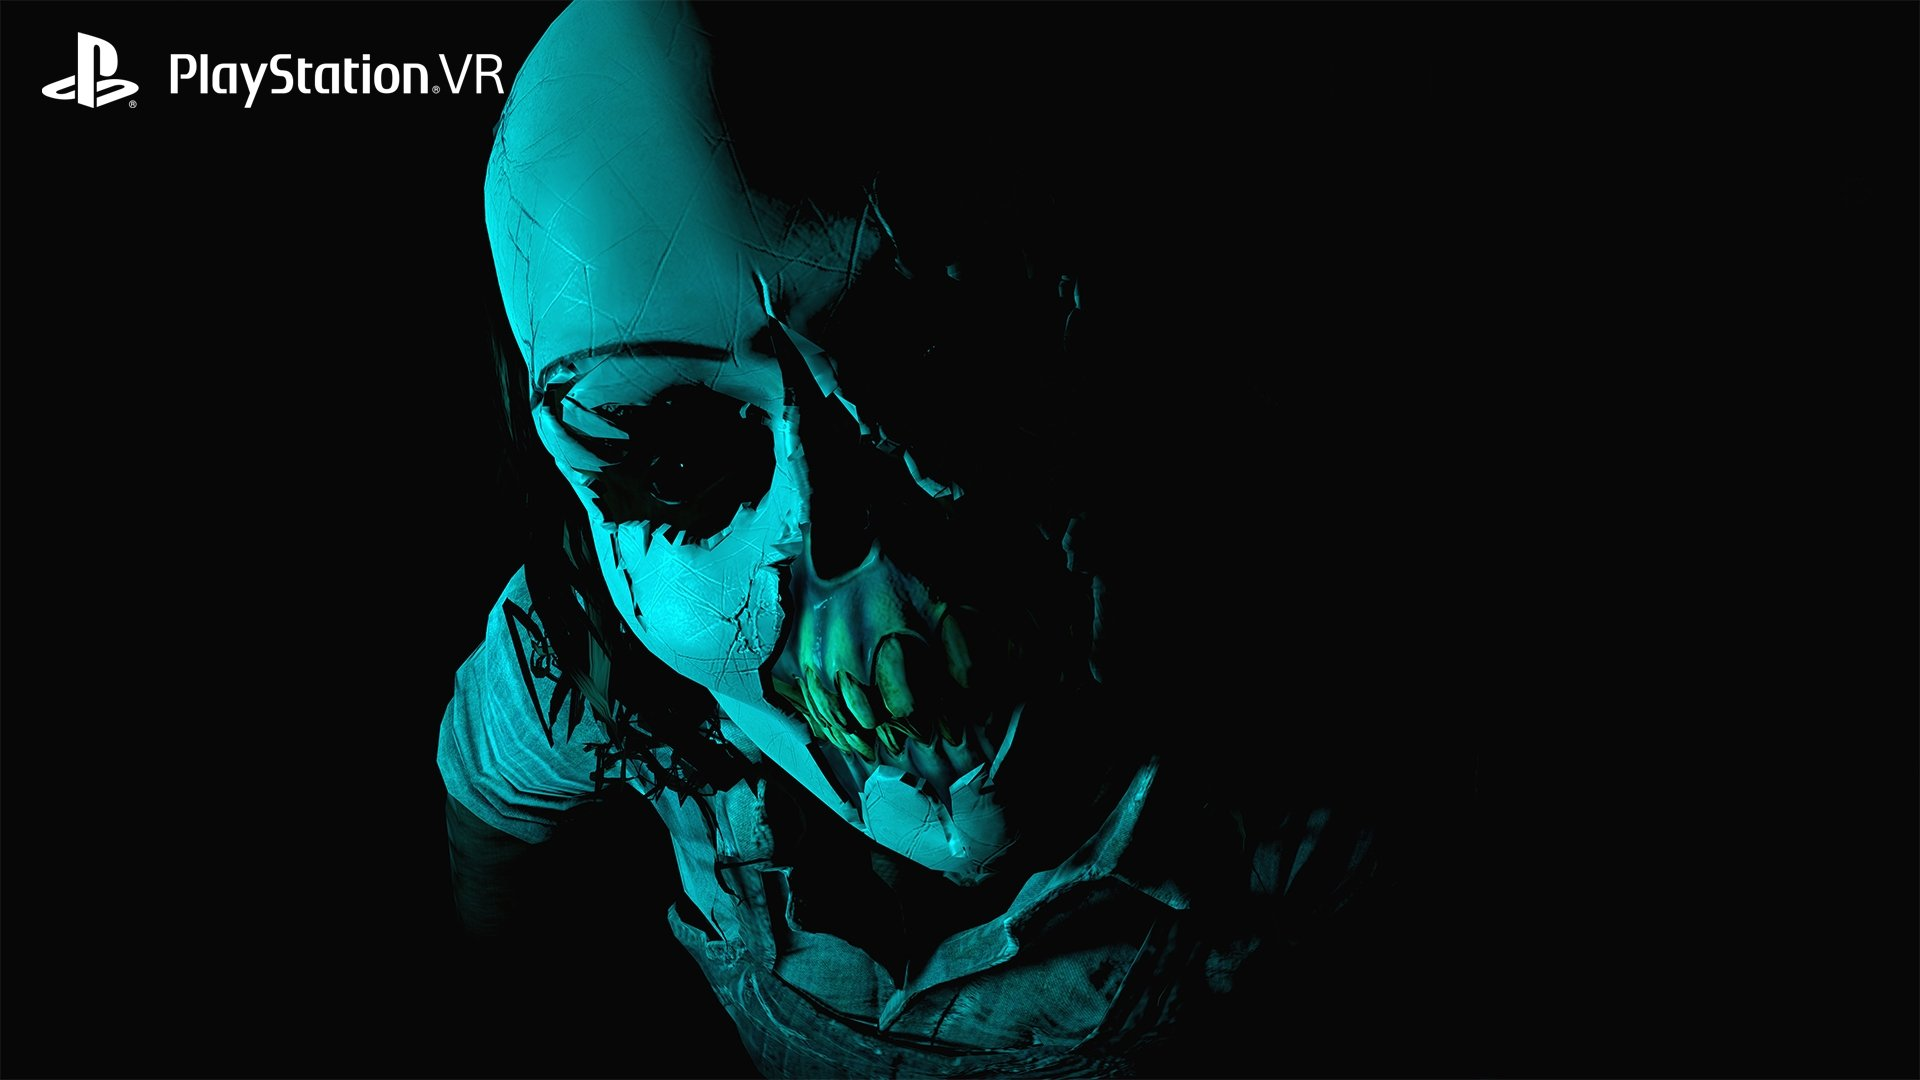 ¡A puro susto! Until Dawn: Rush of Blood para #PSVR